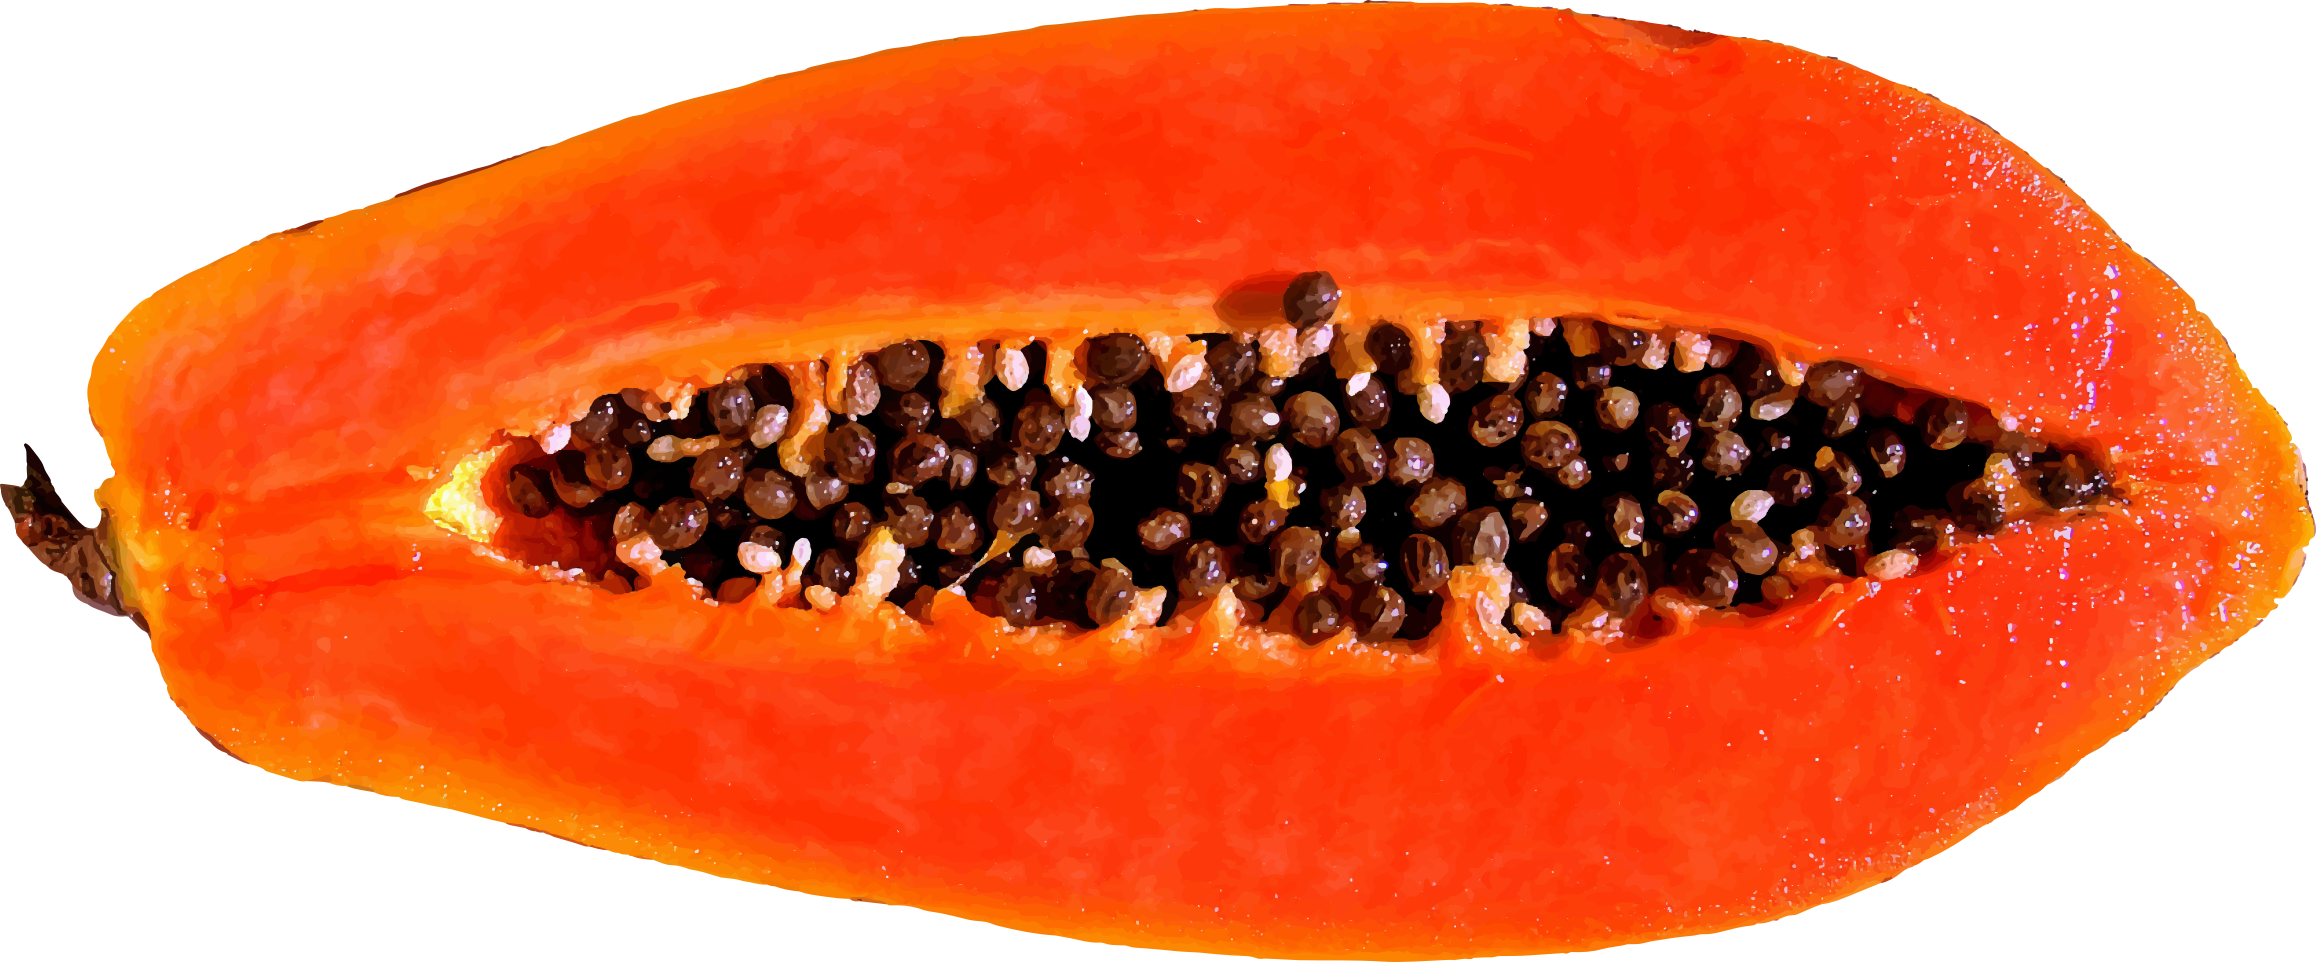 https://openclipart.org/image/2400px/svg_to_png/220670/Papaya.png